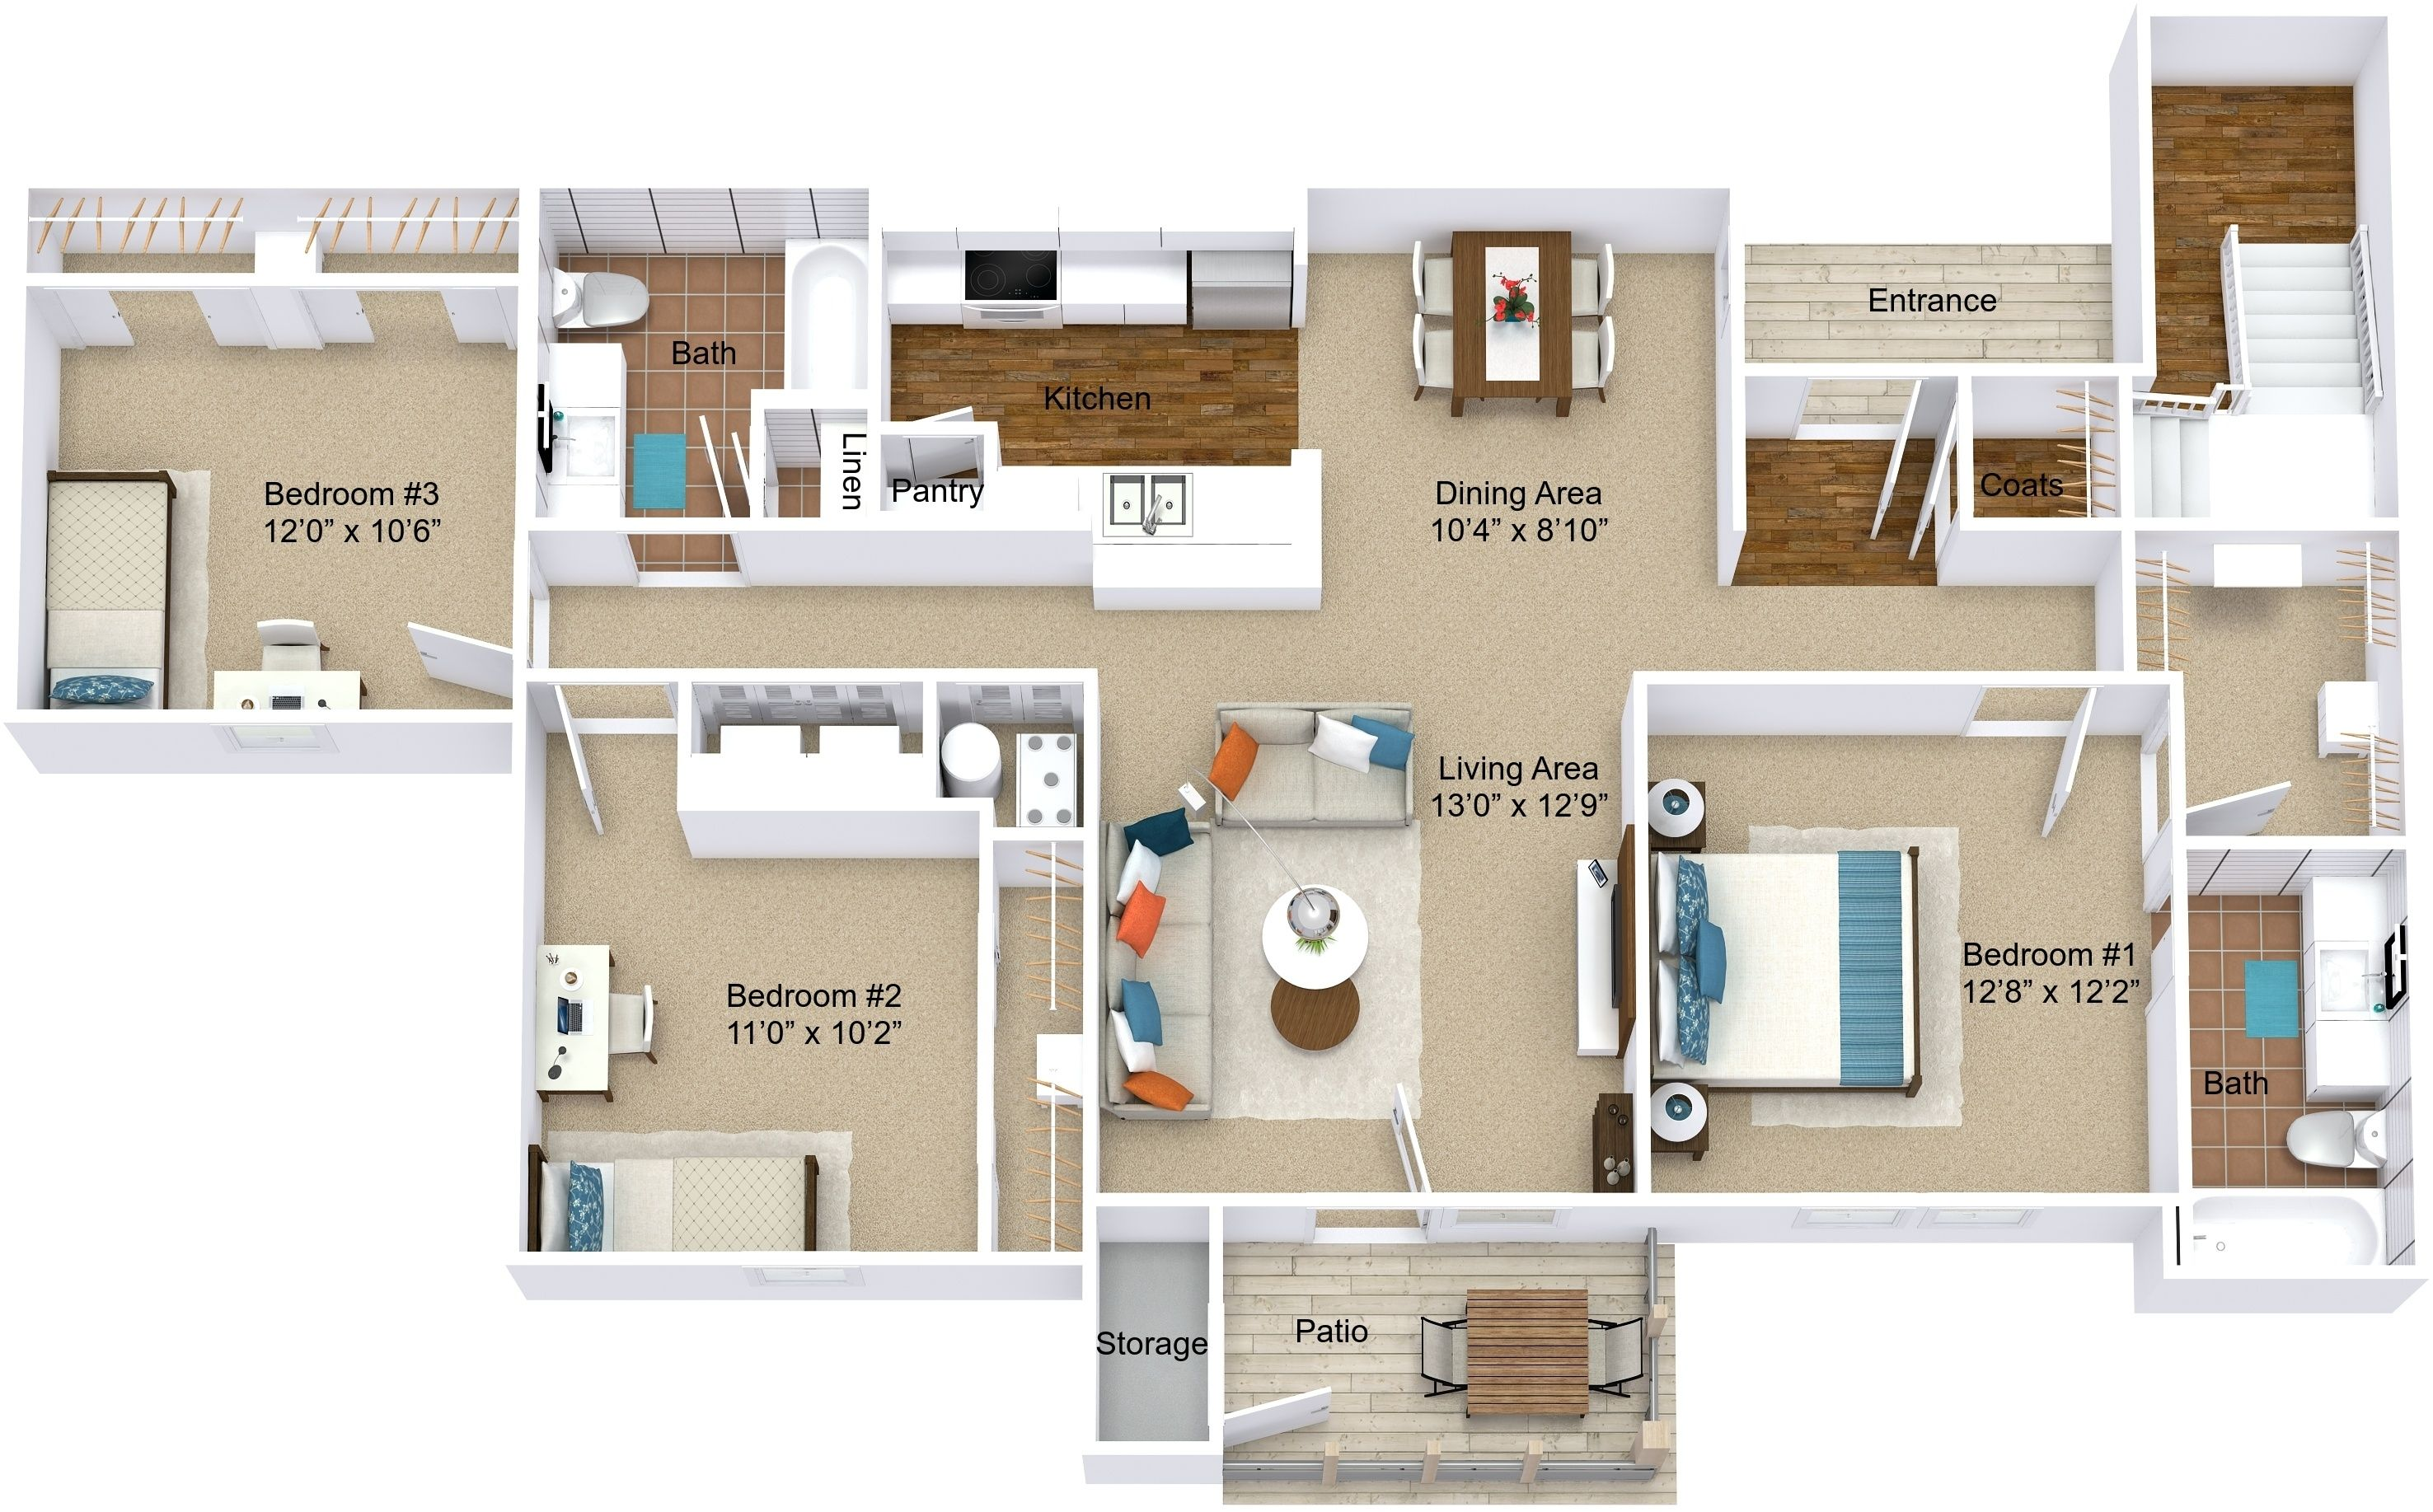 Beaver Creek Luxury Apartment Homes In Newburgh Indiana Has Immediate Availability On Their Beautiful 3 Bedroom Finding Apartments Apartment Rental Apartments